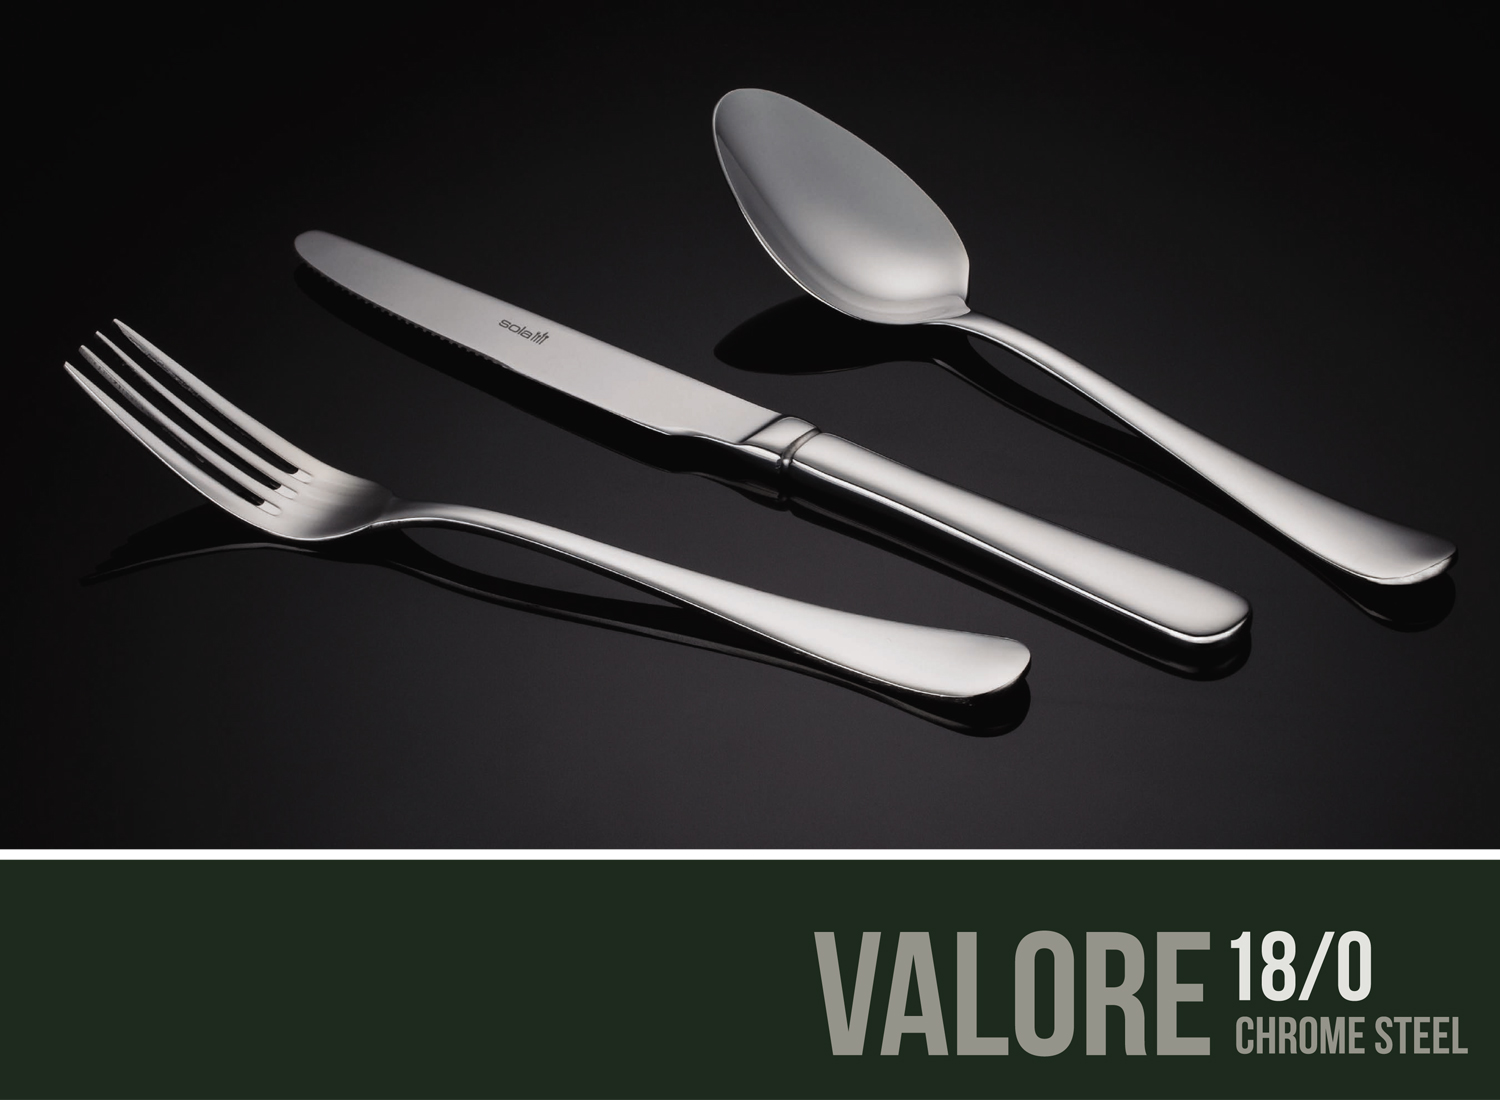 Valore Chrome Steel